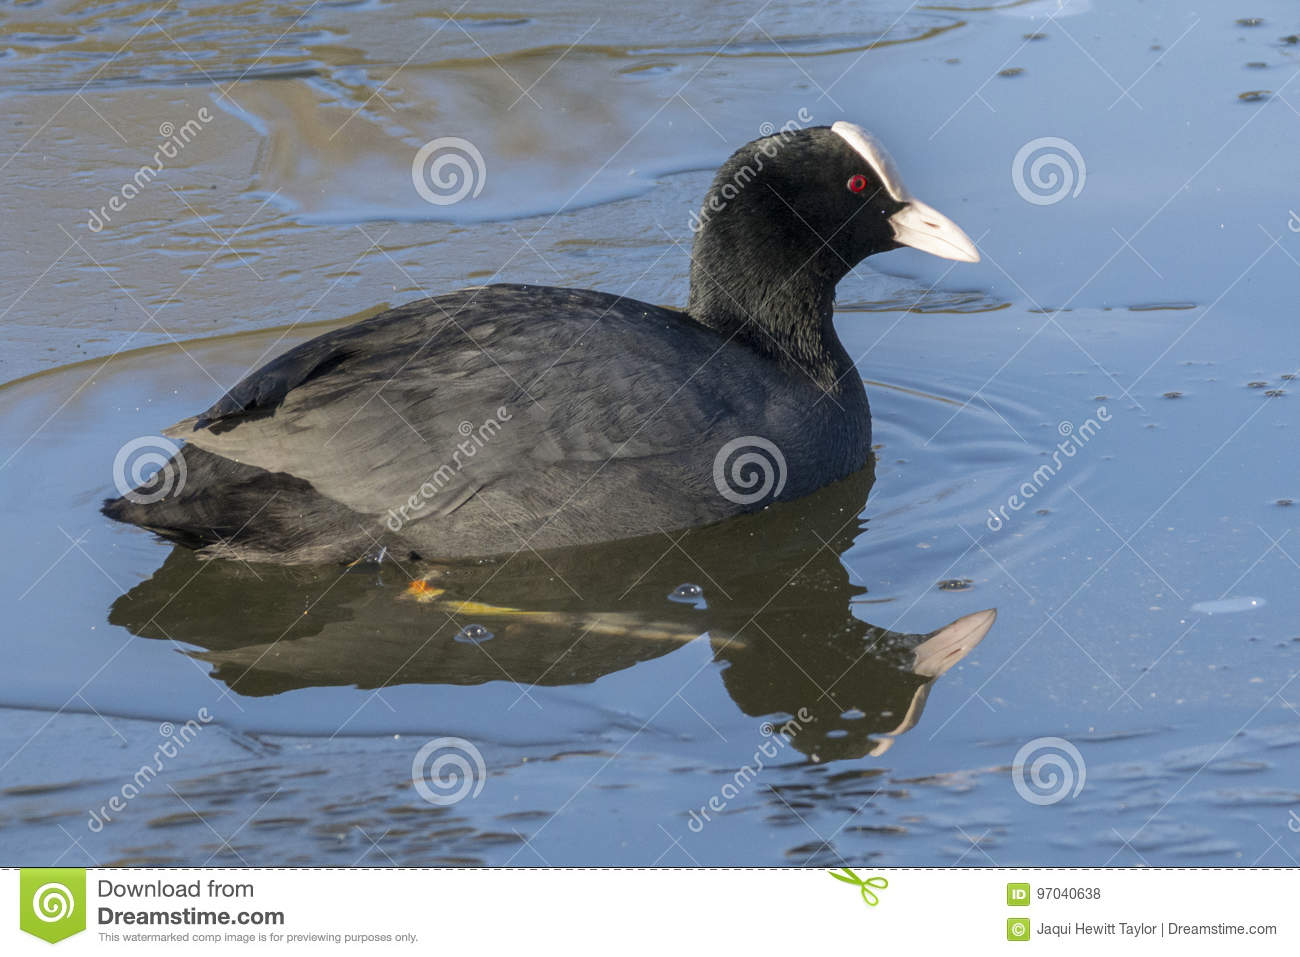 Coot in icy water